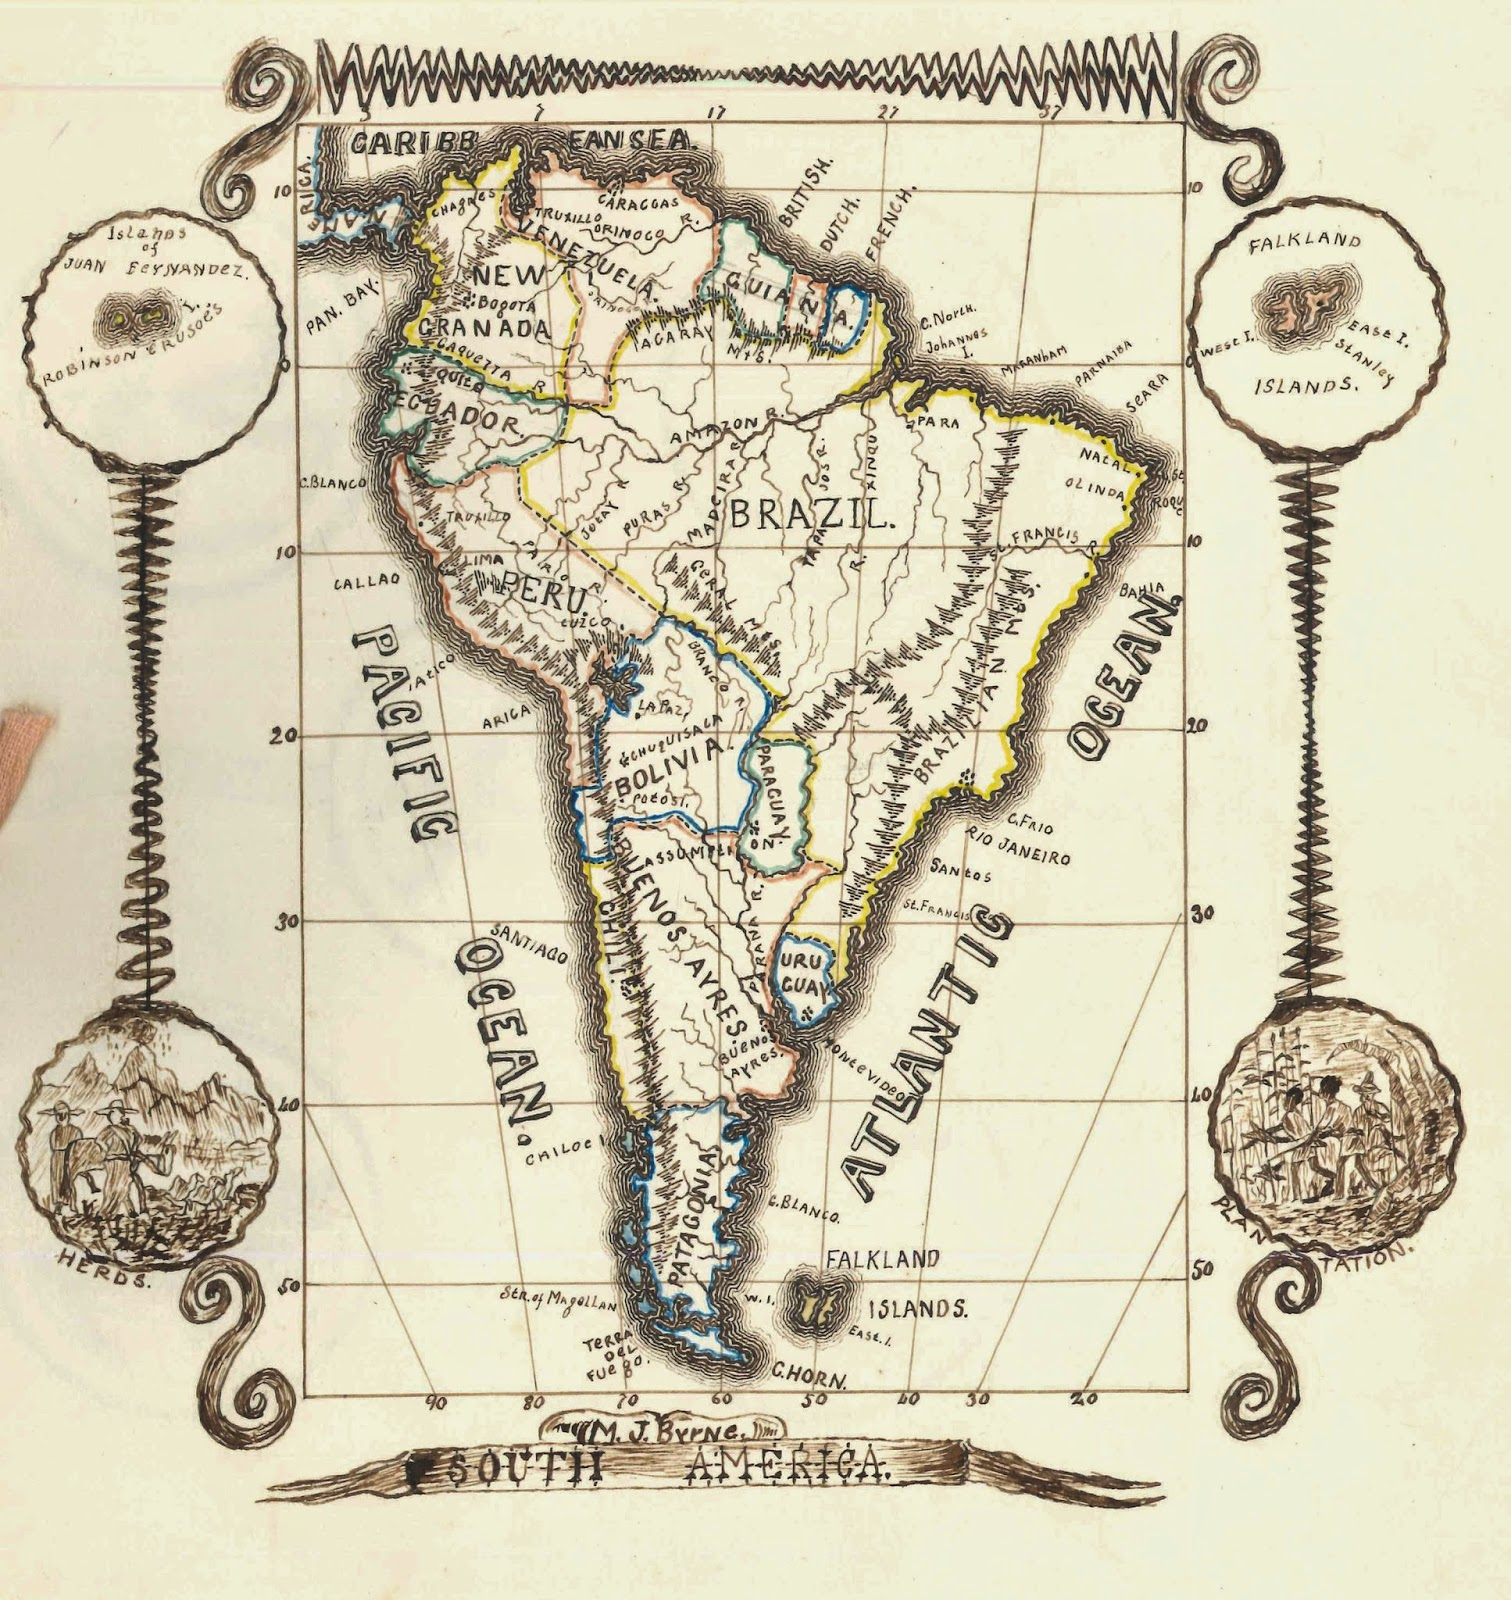 A hand-drawn map of South America.